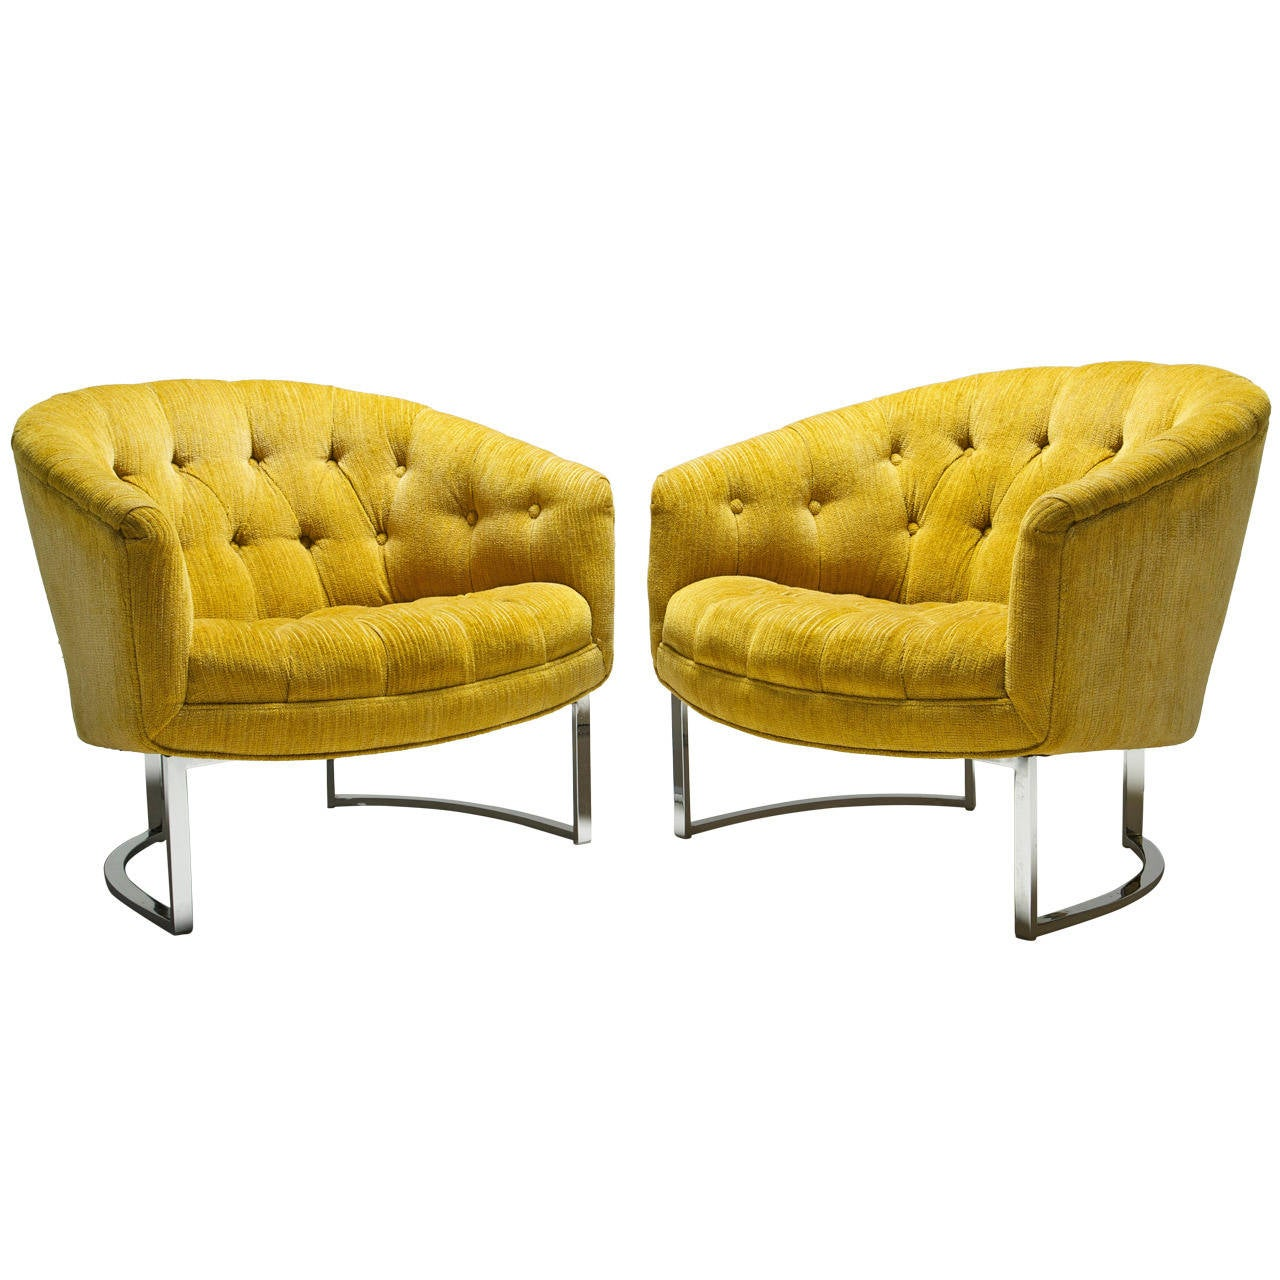 Yellow and Chrome Baughman Style Tufted Lounge Chairs at 1stdibs